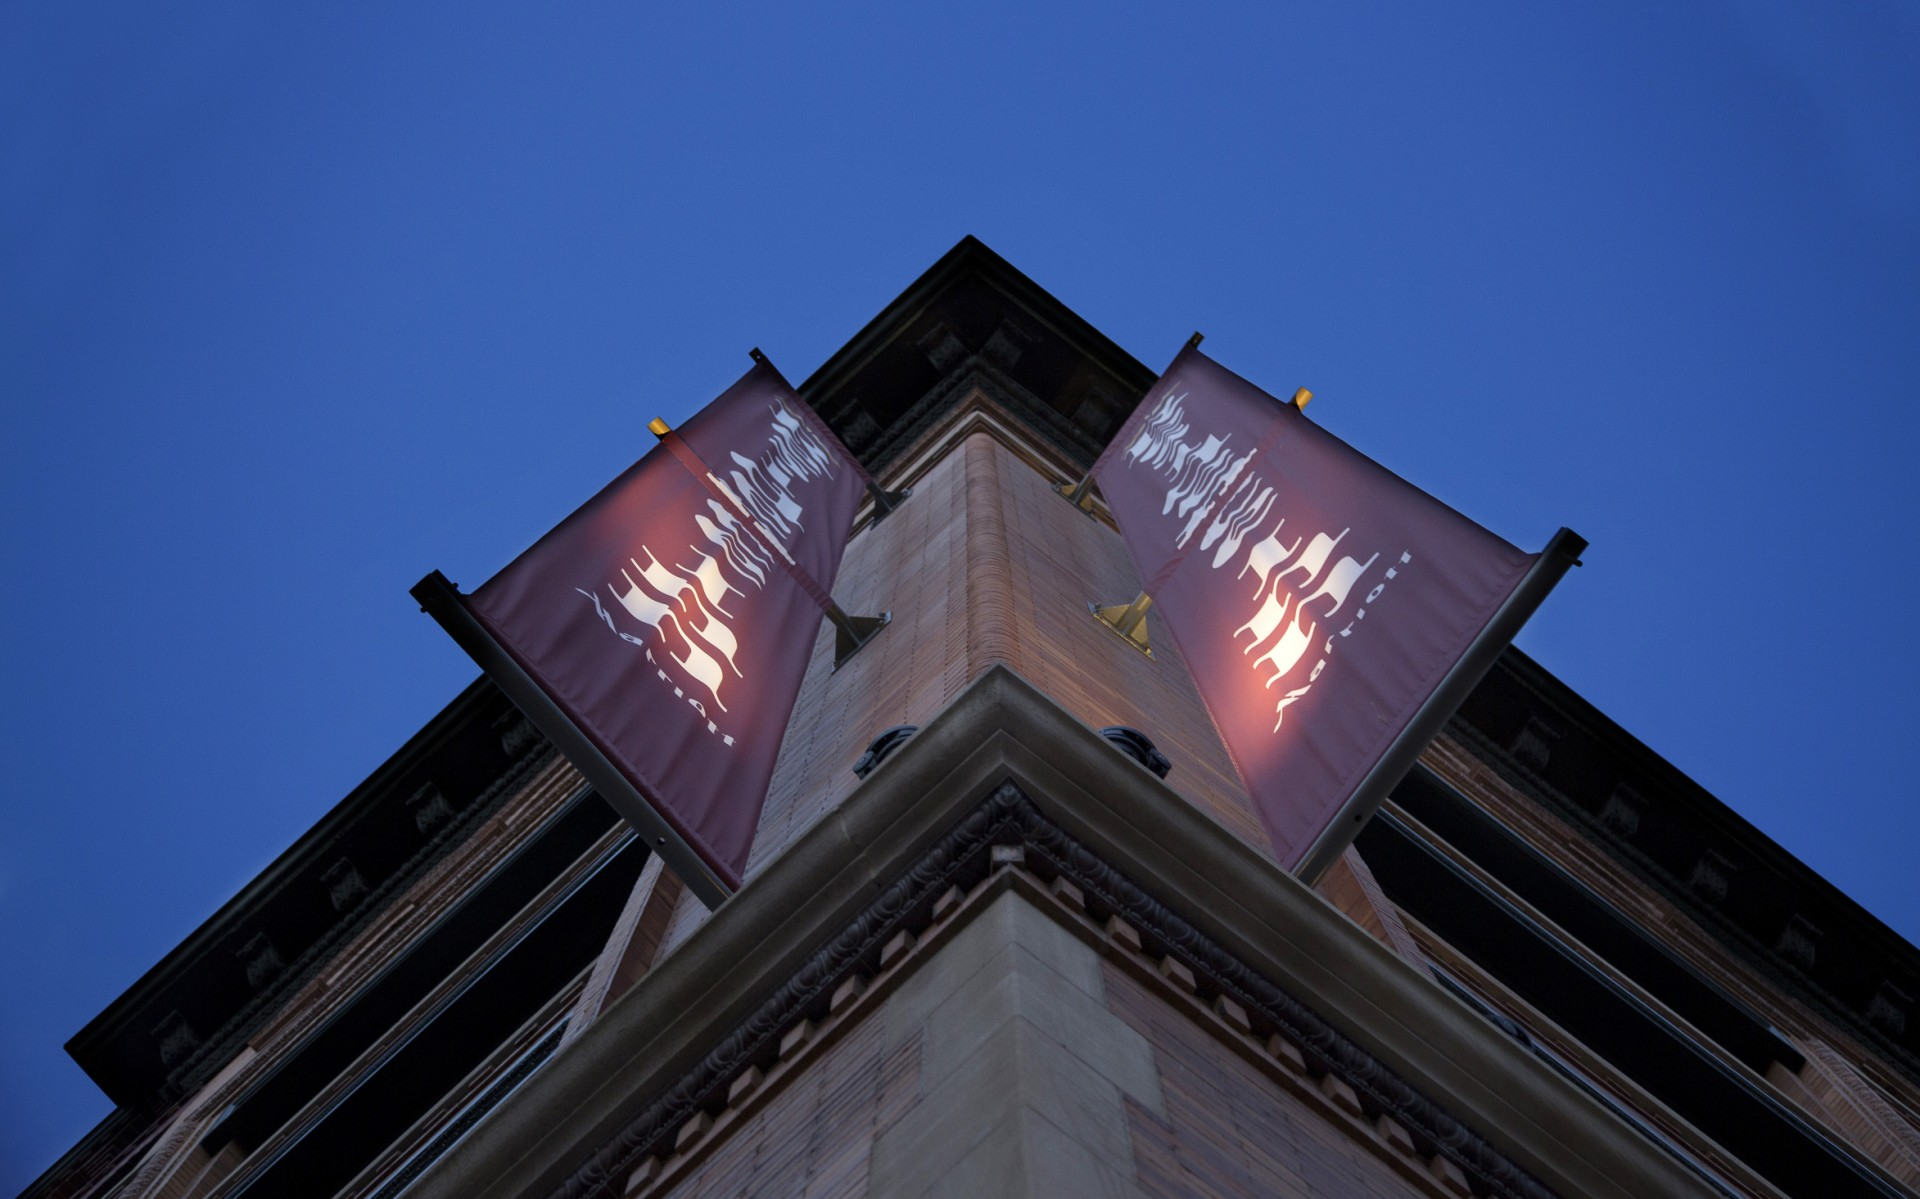 The fixtures are also used to illuminate the banners advertising the Residence Inn.